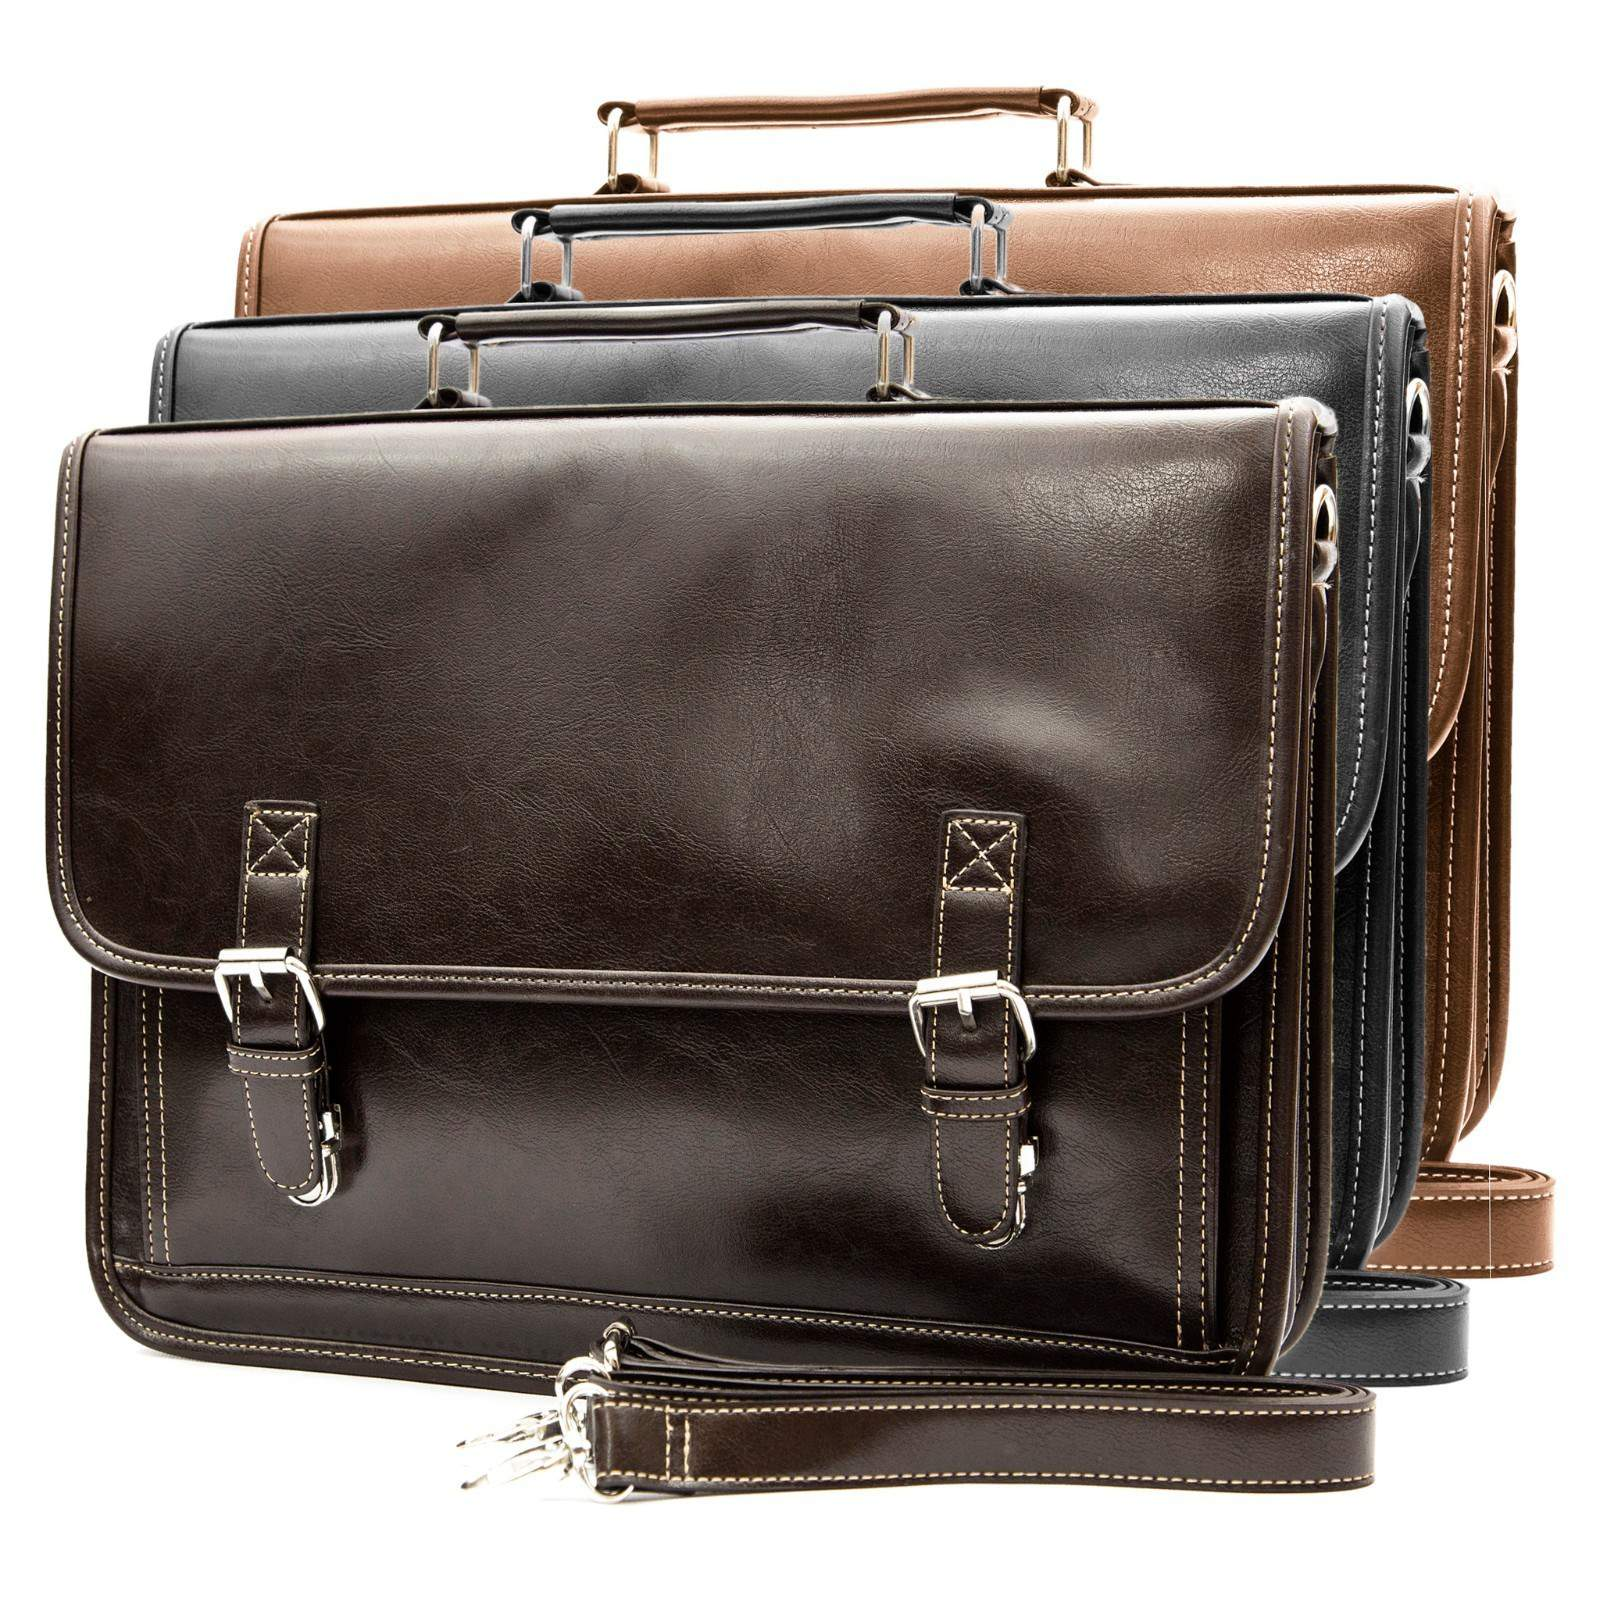 NEW Classic Vintage Men s Professional Business Briefcase Messenger Bag  Leather on Luulla c9109f187a8a0